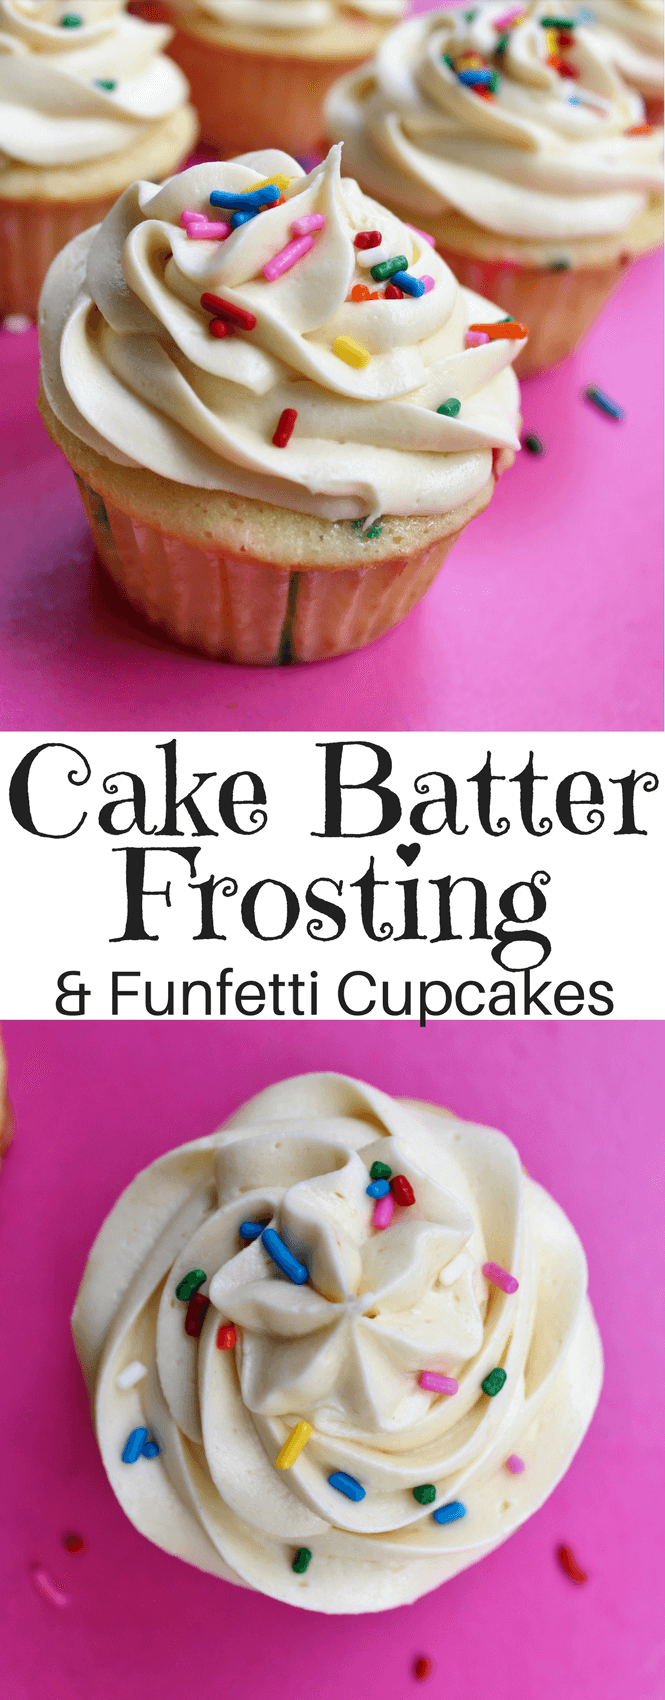 Cake Batter Frosting and Funfetti Cupcakes